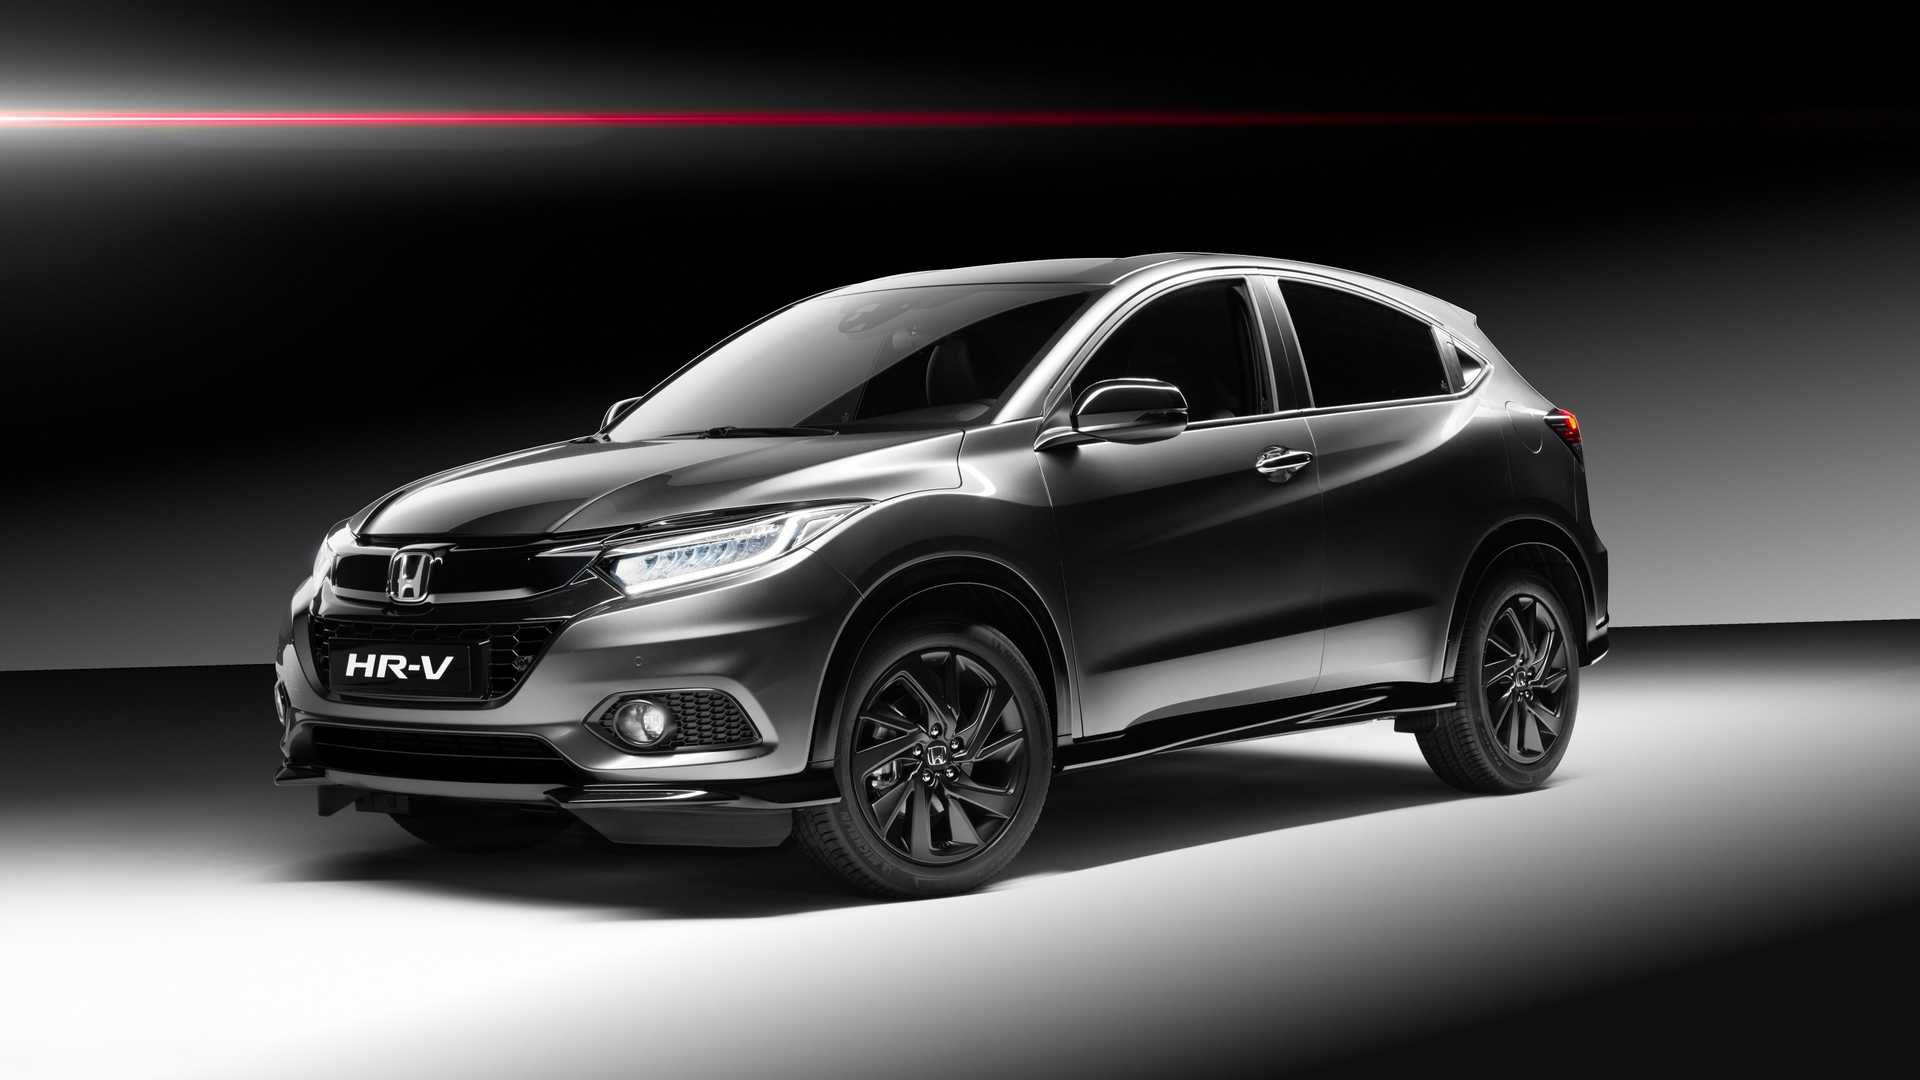 Honda HR-V Sport Turbocharged To 180 HP In Europe